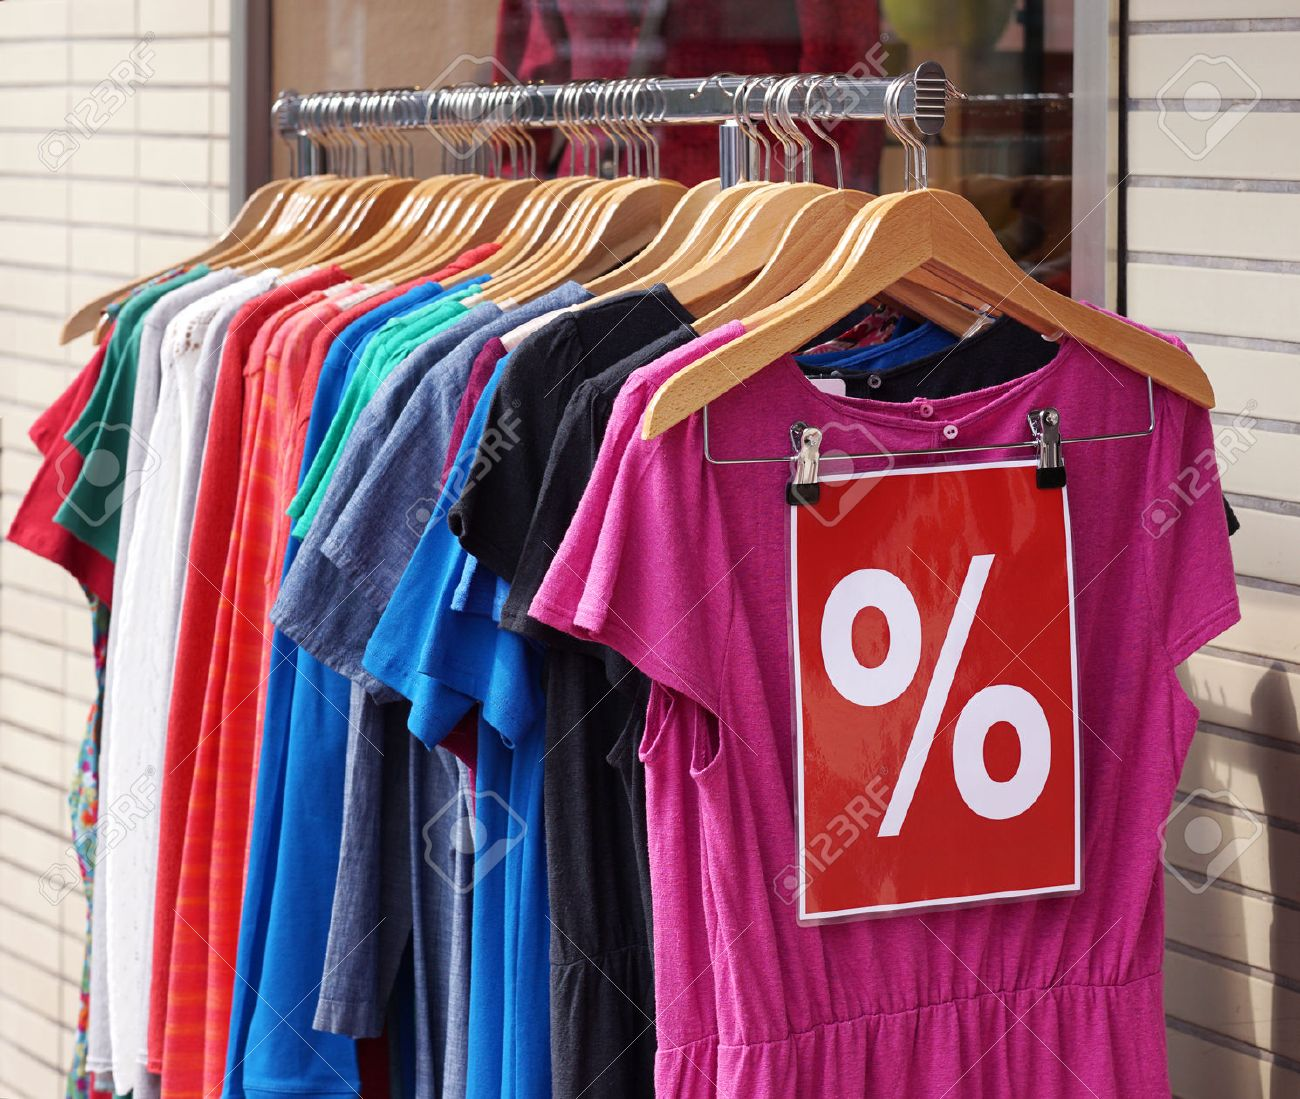 9cdafc8f79da4 clearance sale clothes rack with a selection of fashion for women Stock  Photo - 44170212